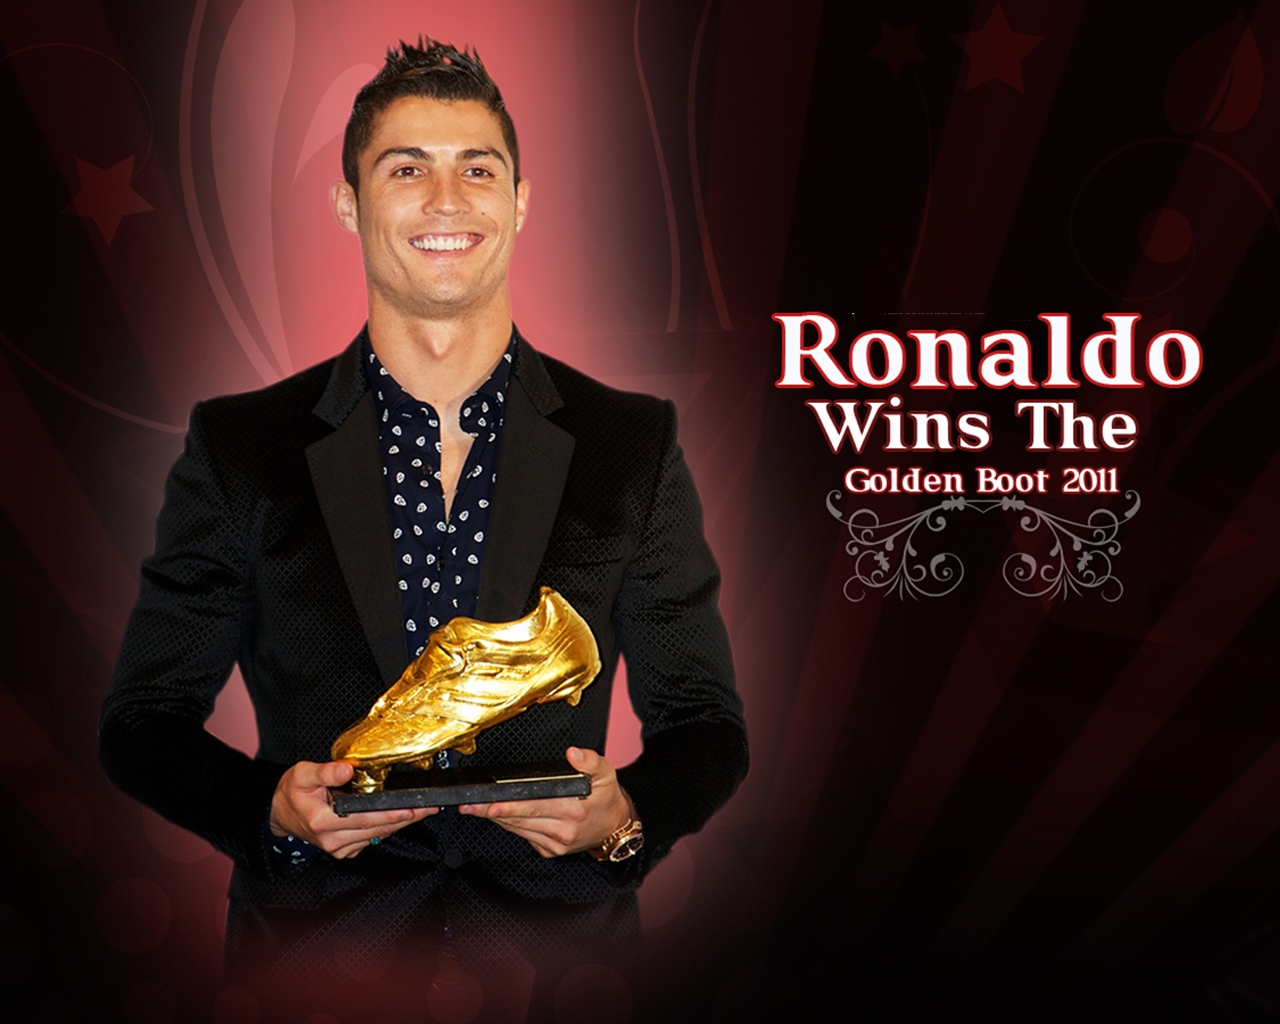 CR7 Wallpapers 309 New collection of cr7 wallpapers 2015 1280x1024